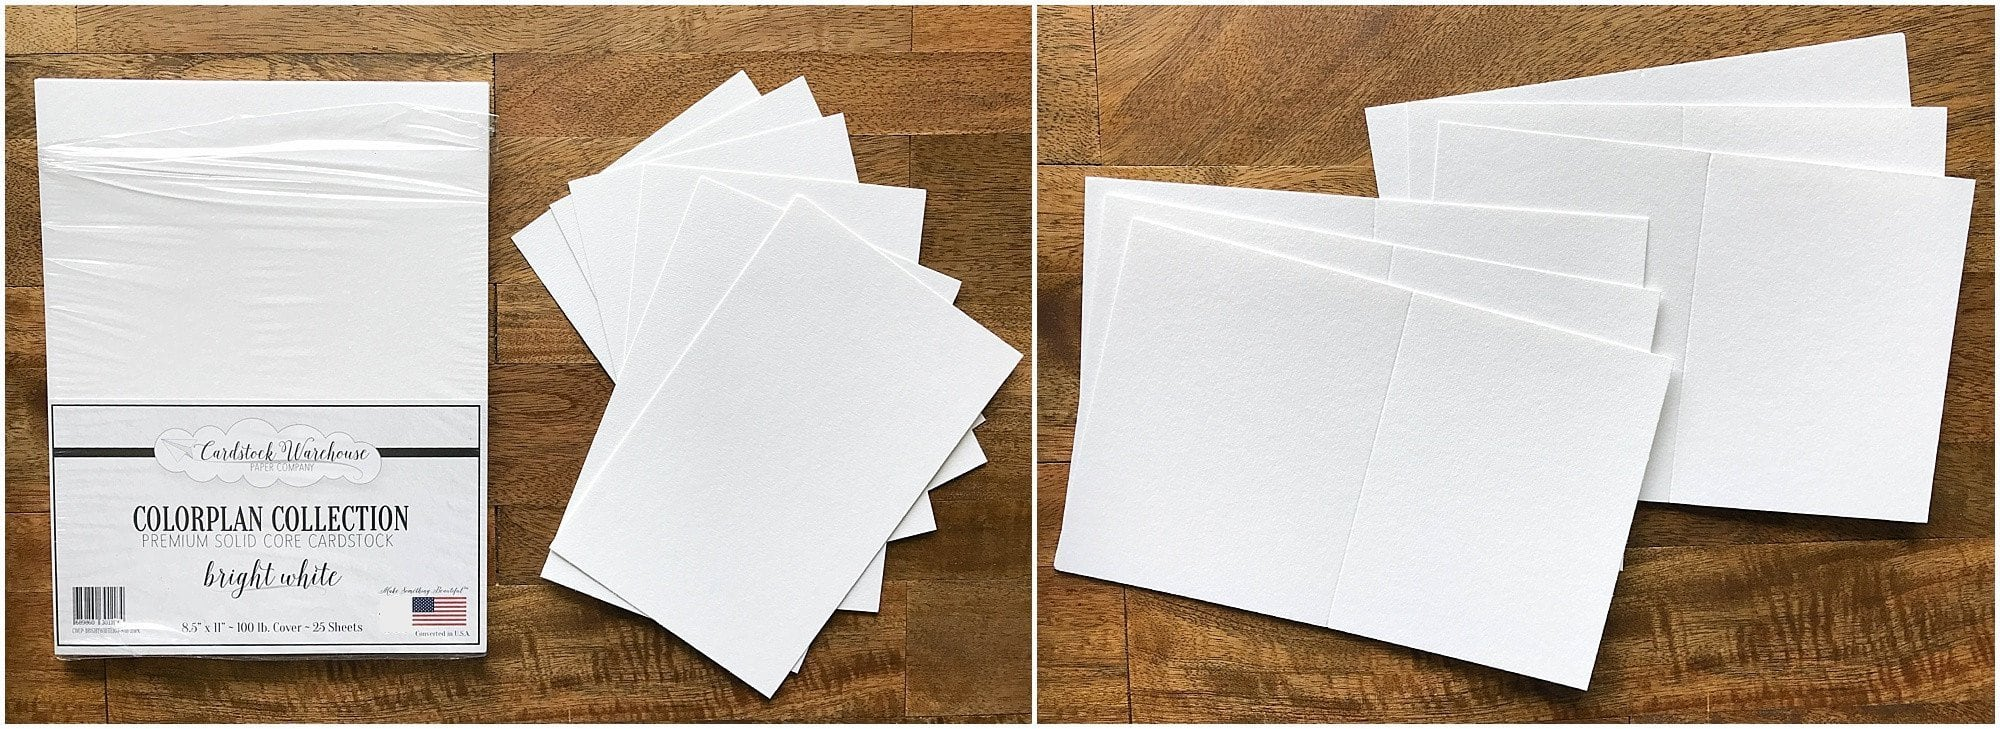 bright white colorplan cardstock warehouse cardstock and scored cards